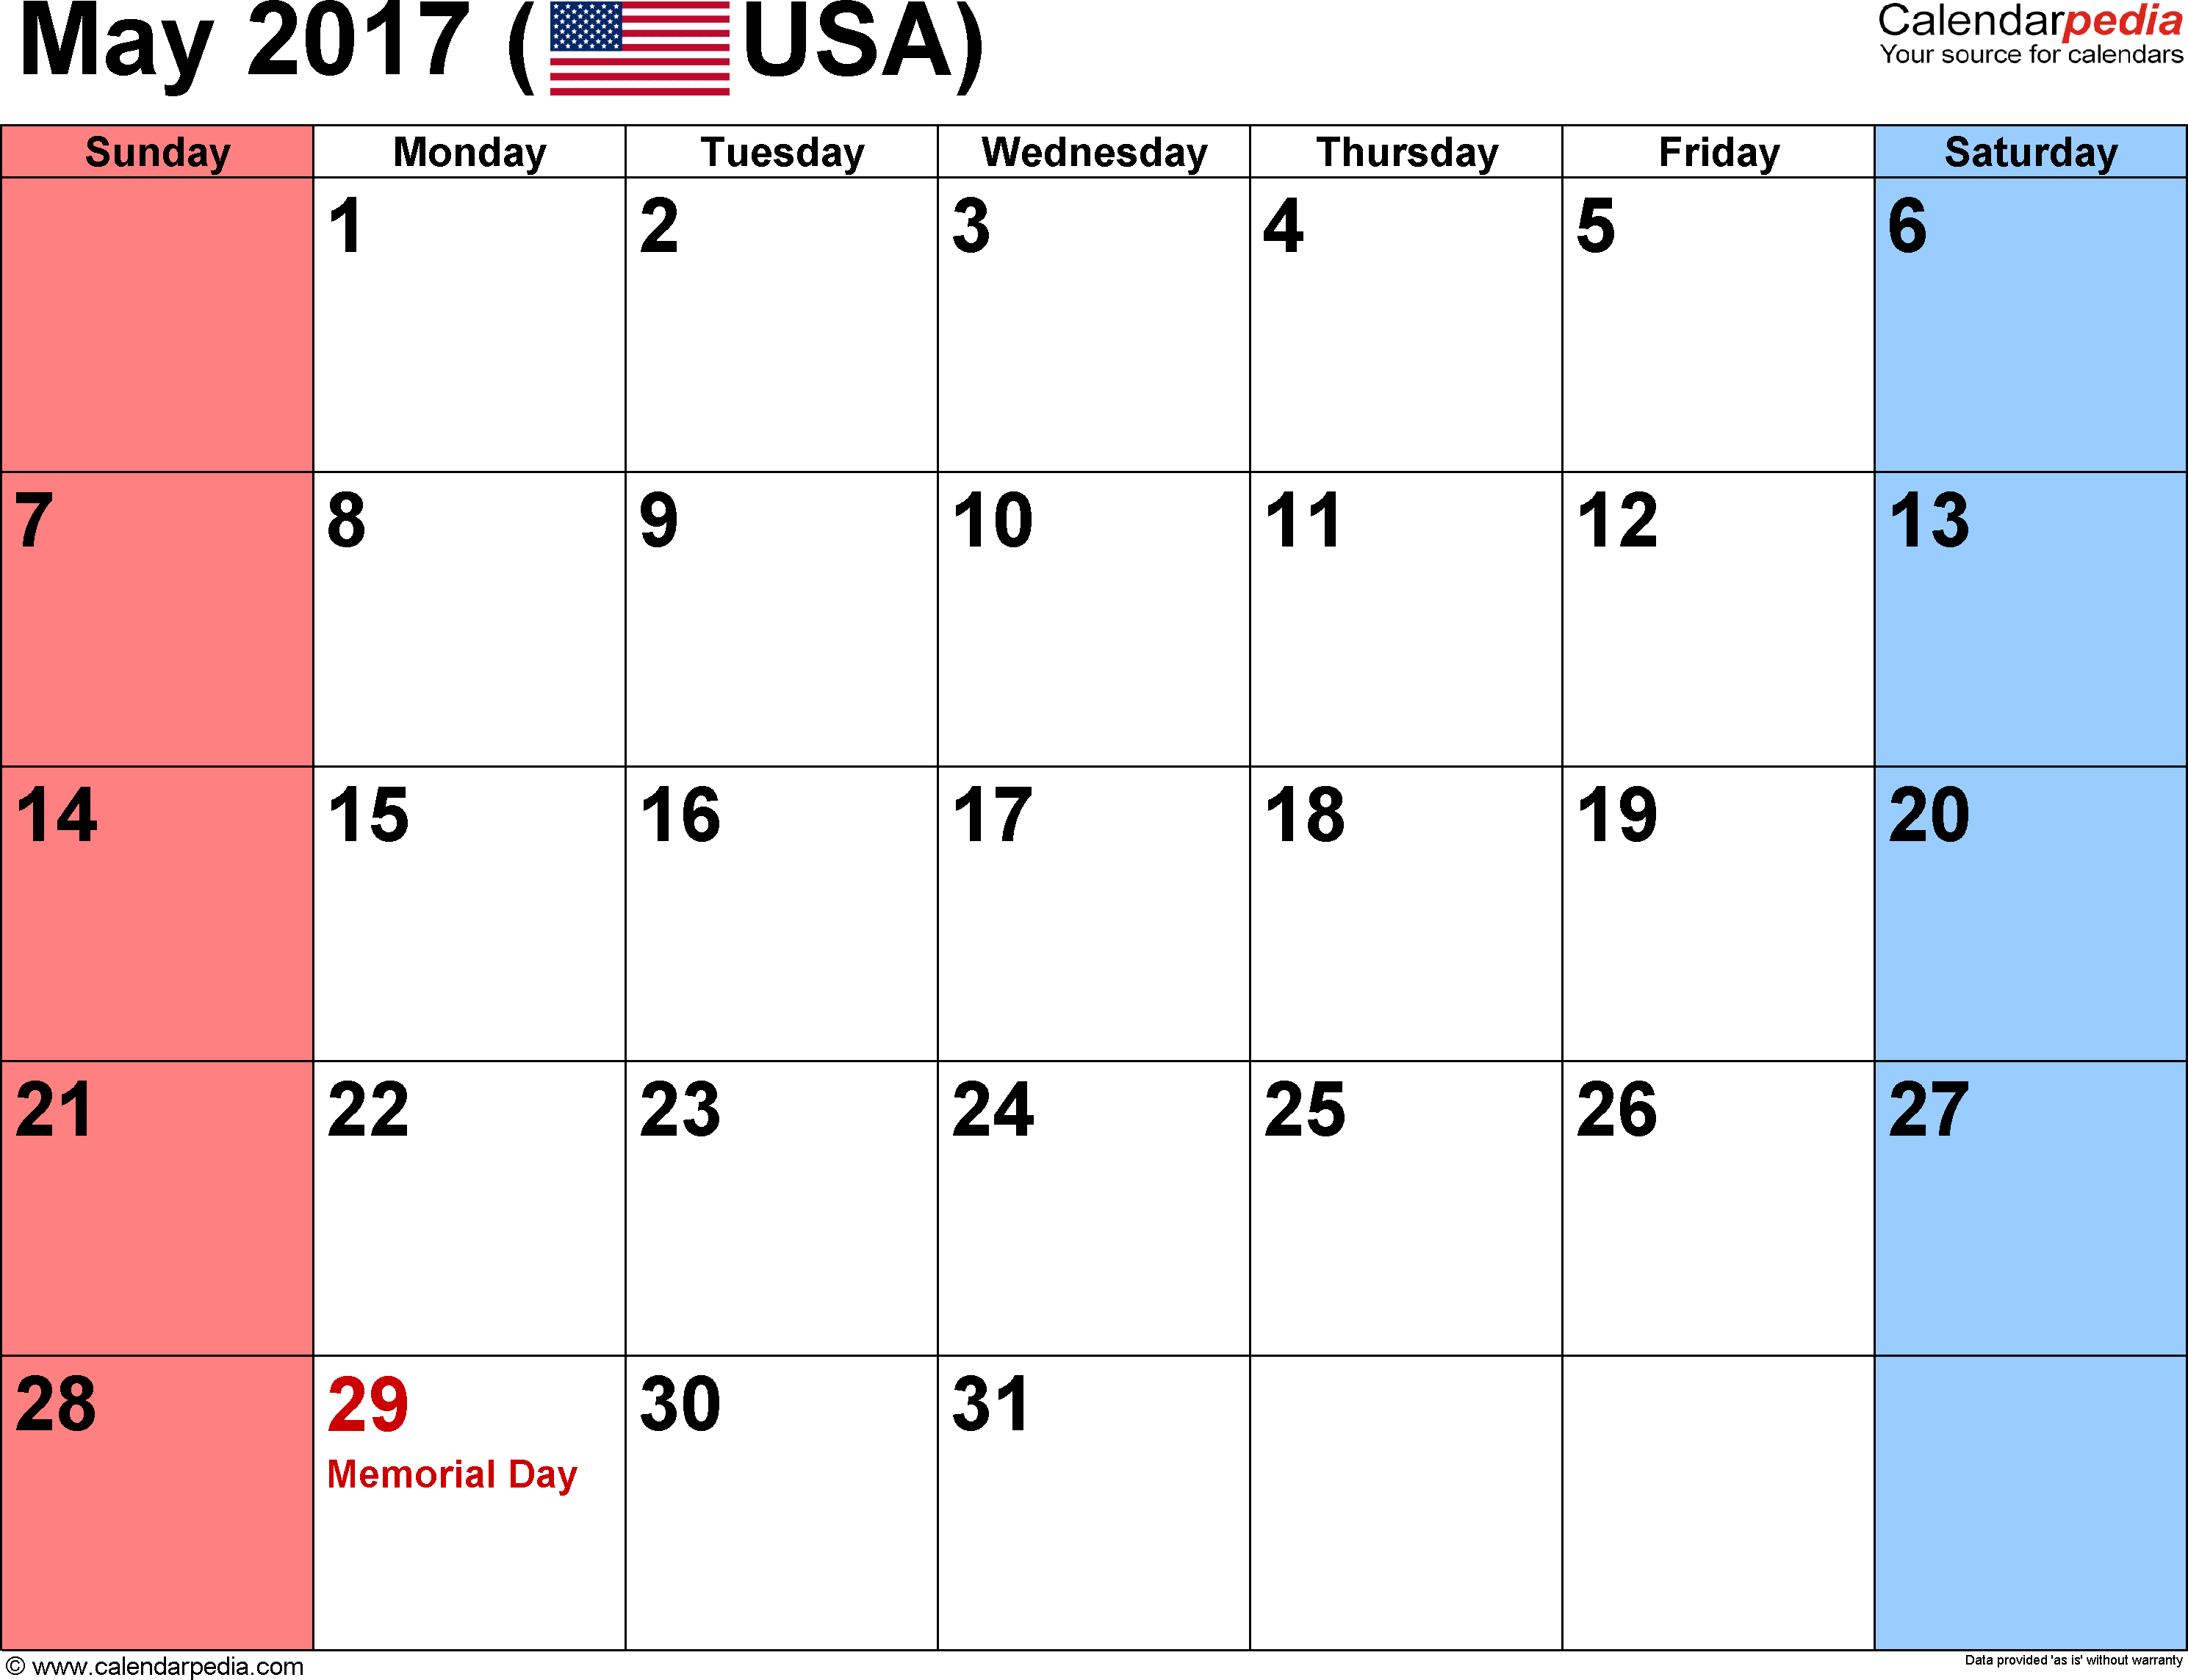 Printable Calendar May 2017 may 2017 calendars for word, excel & pdf